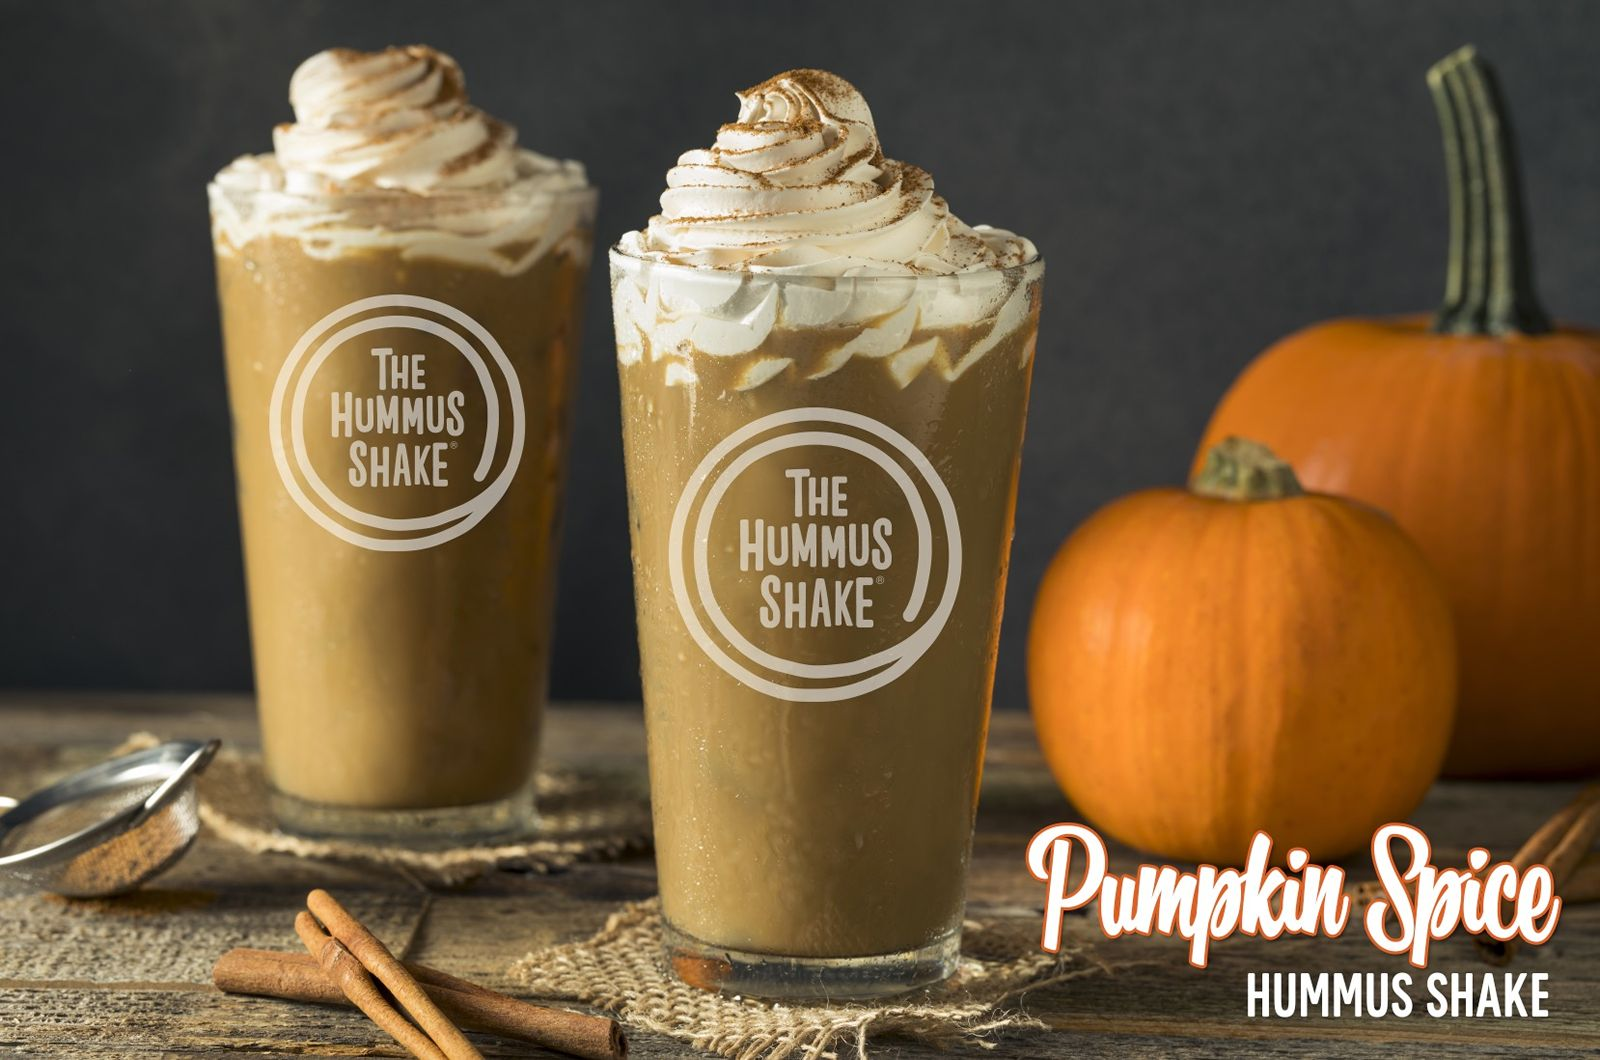 The Hummus & Pita Co. has launched a new Pumpkin Spice Hummus Shake and Pumpkin Pie Dessert Hummus at all of its locations.